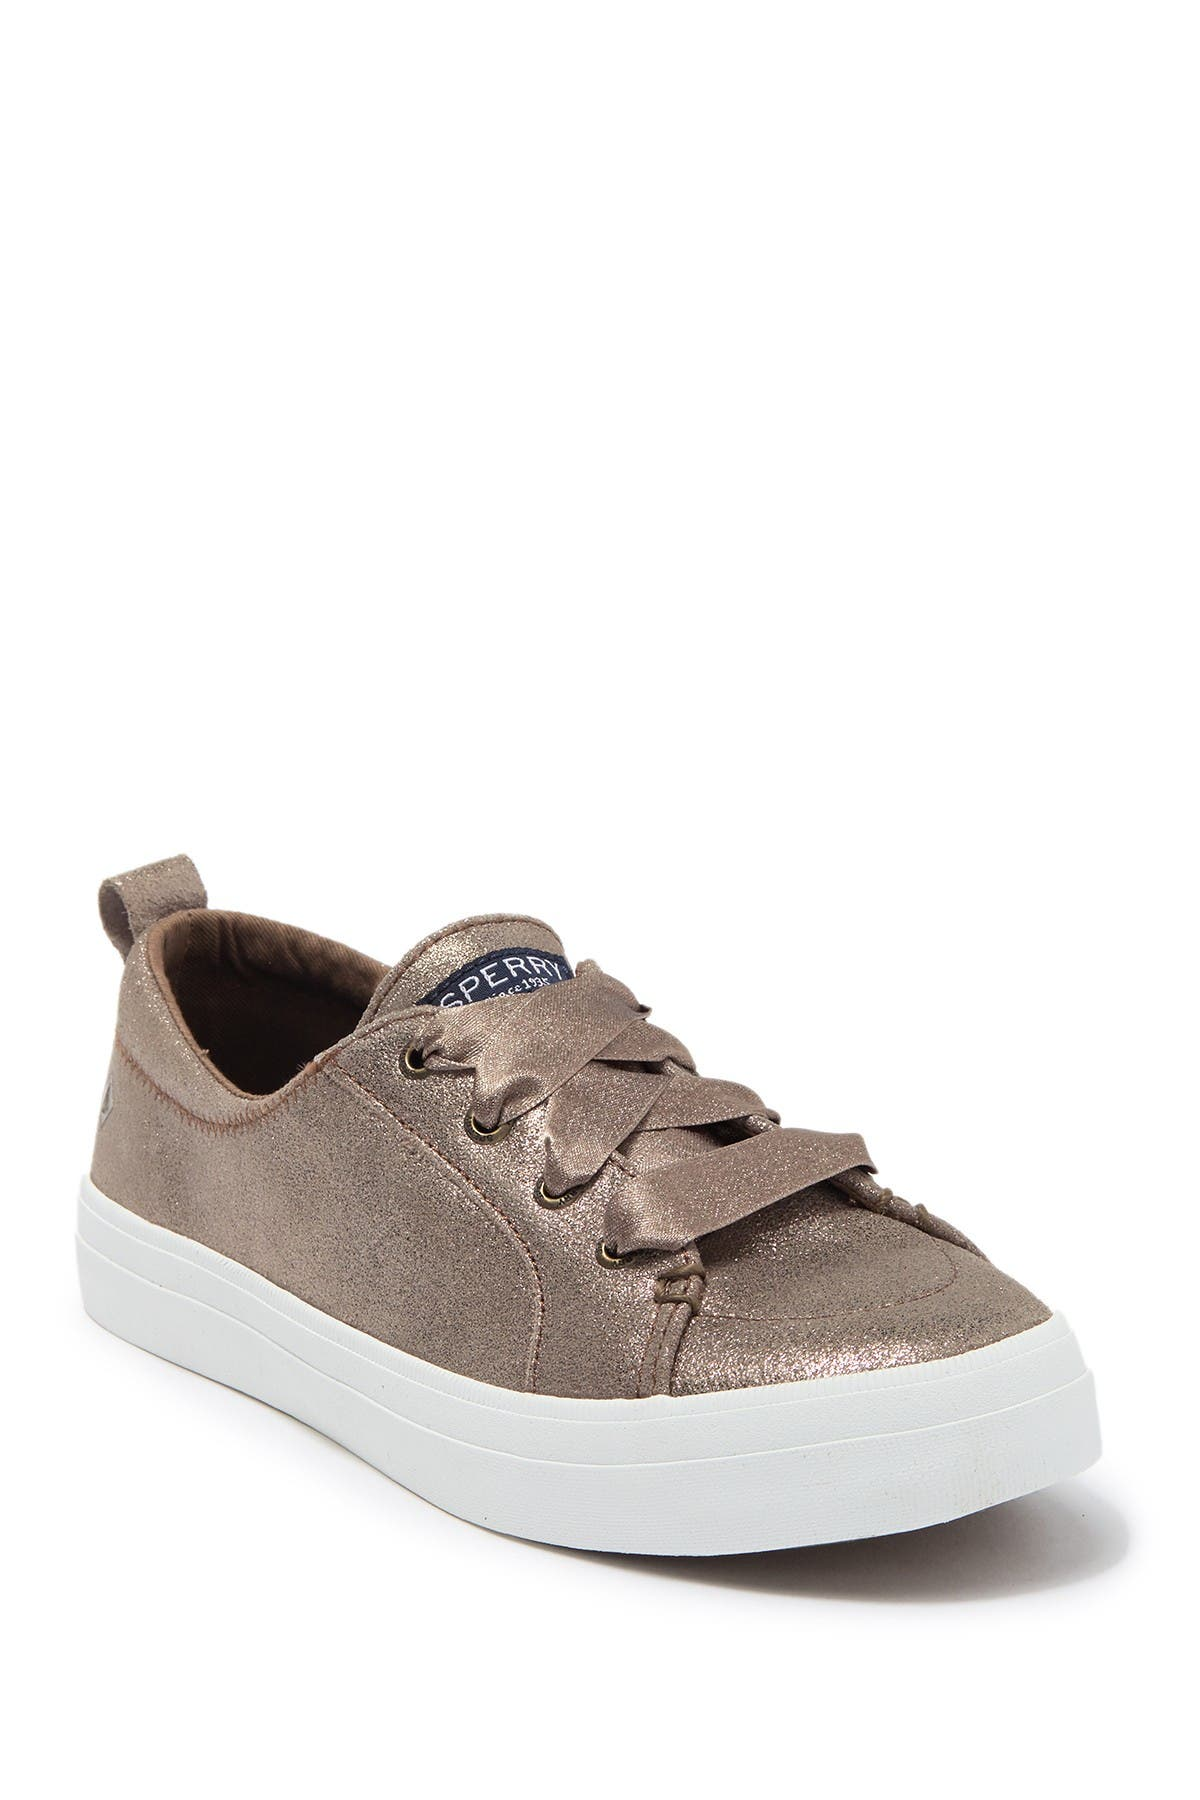 Image of Sperry Crest Vibe Glitter Suede Sneaker